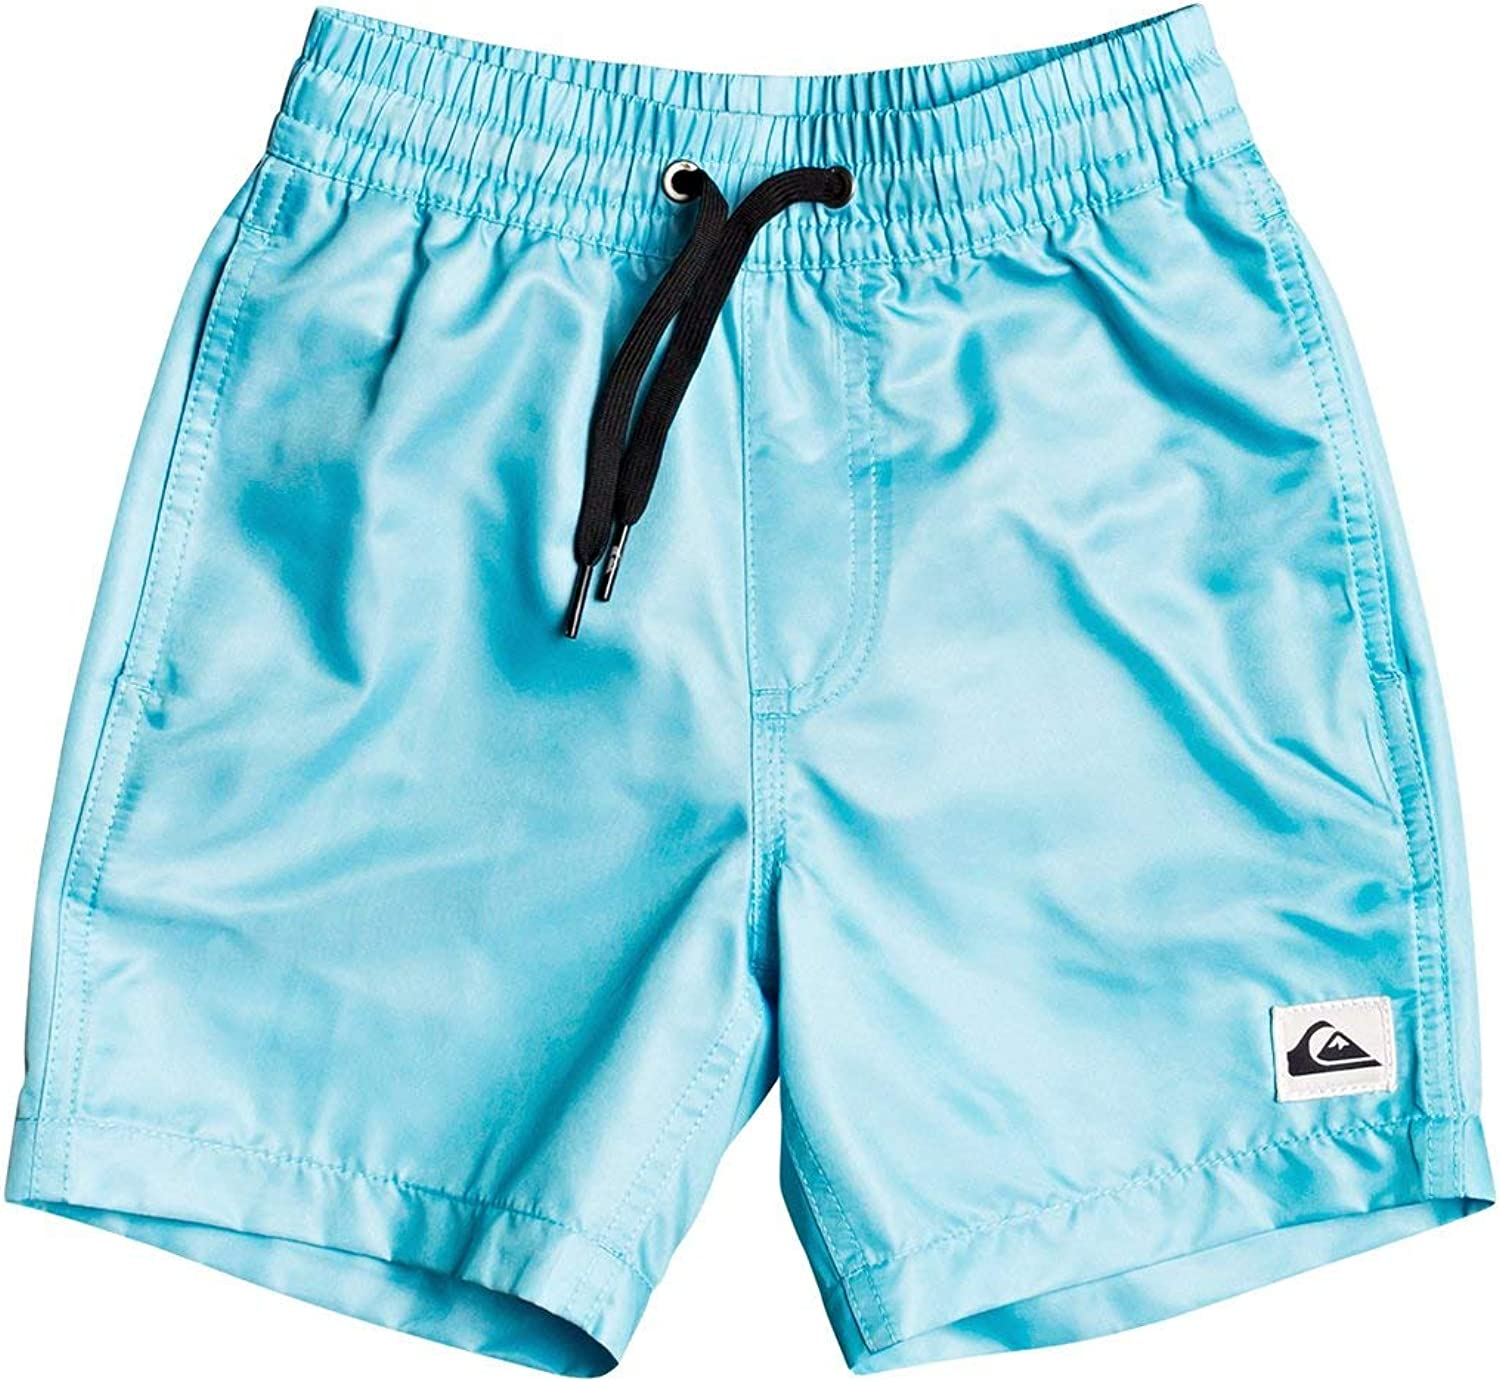 Special price Quiksilver Boys' Shipping included Little Everyday Volley Boardshort 13 Trunk Swim